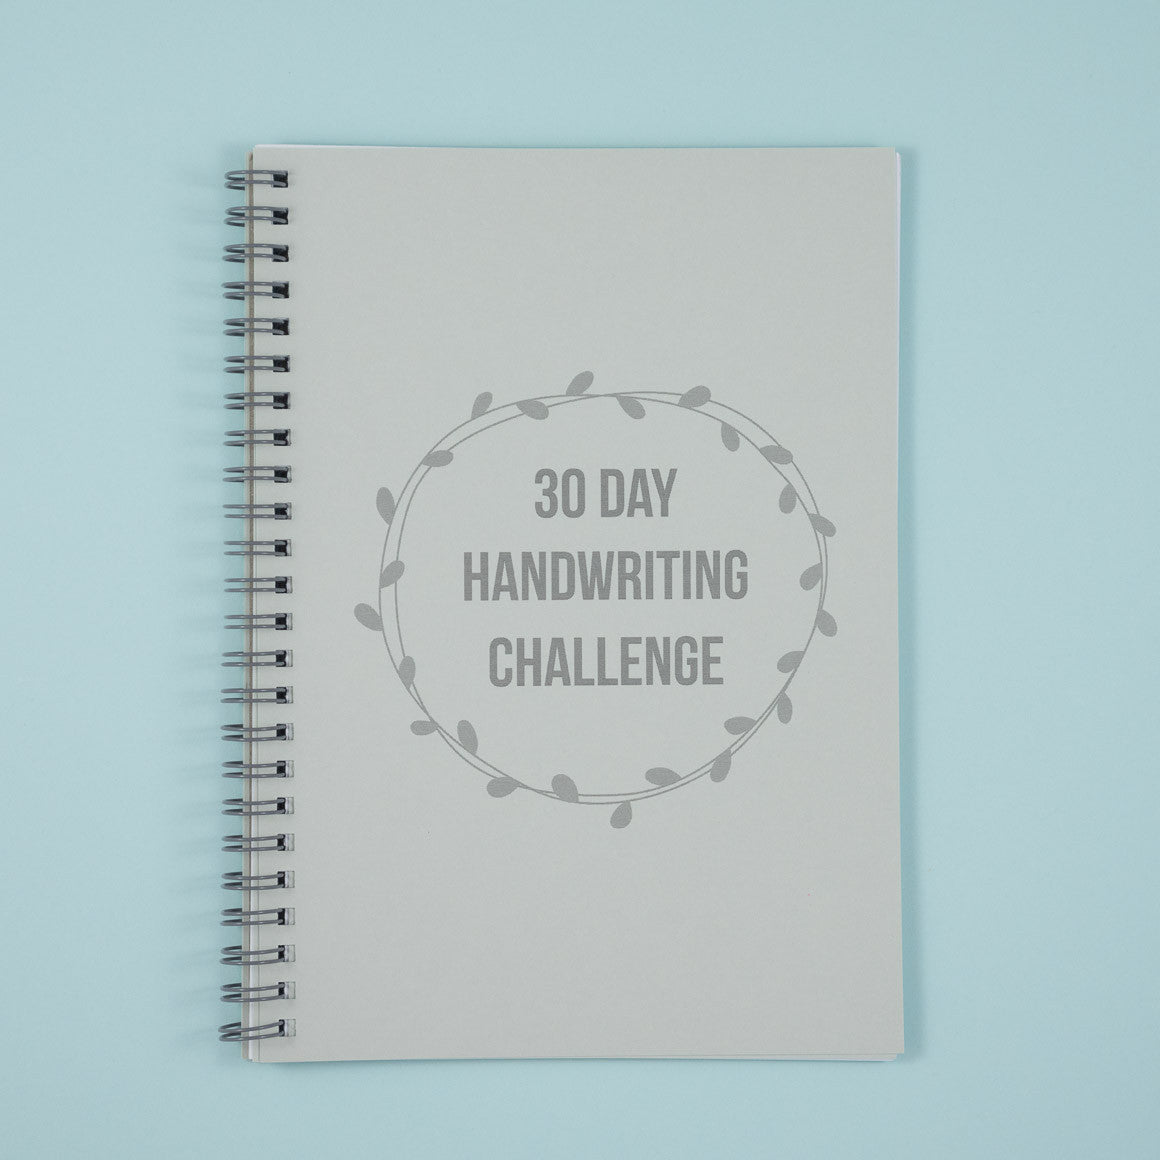 30 day handwriting challenge notebook